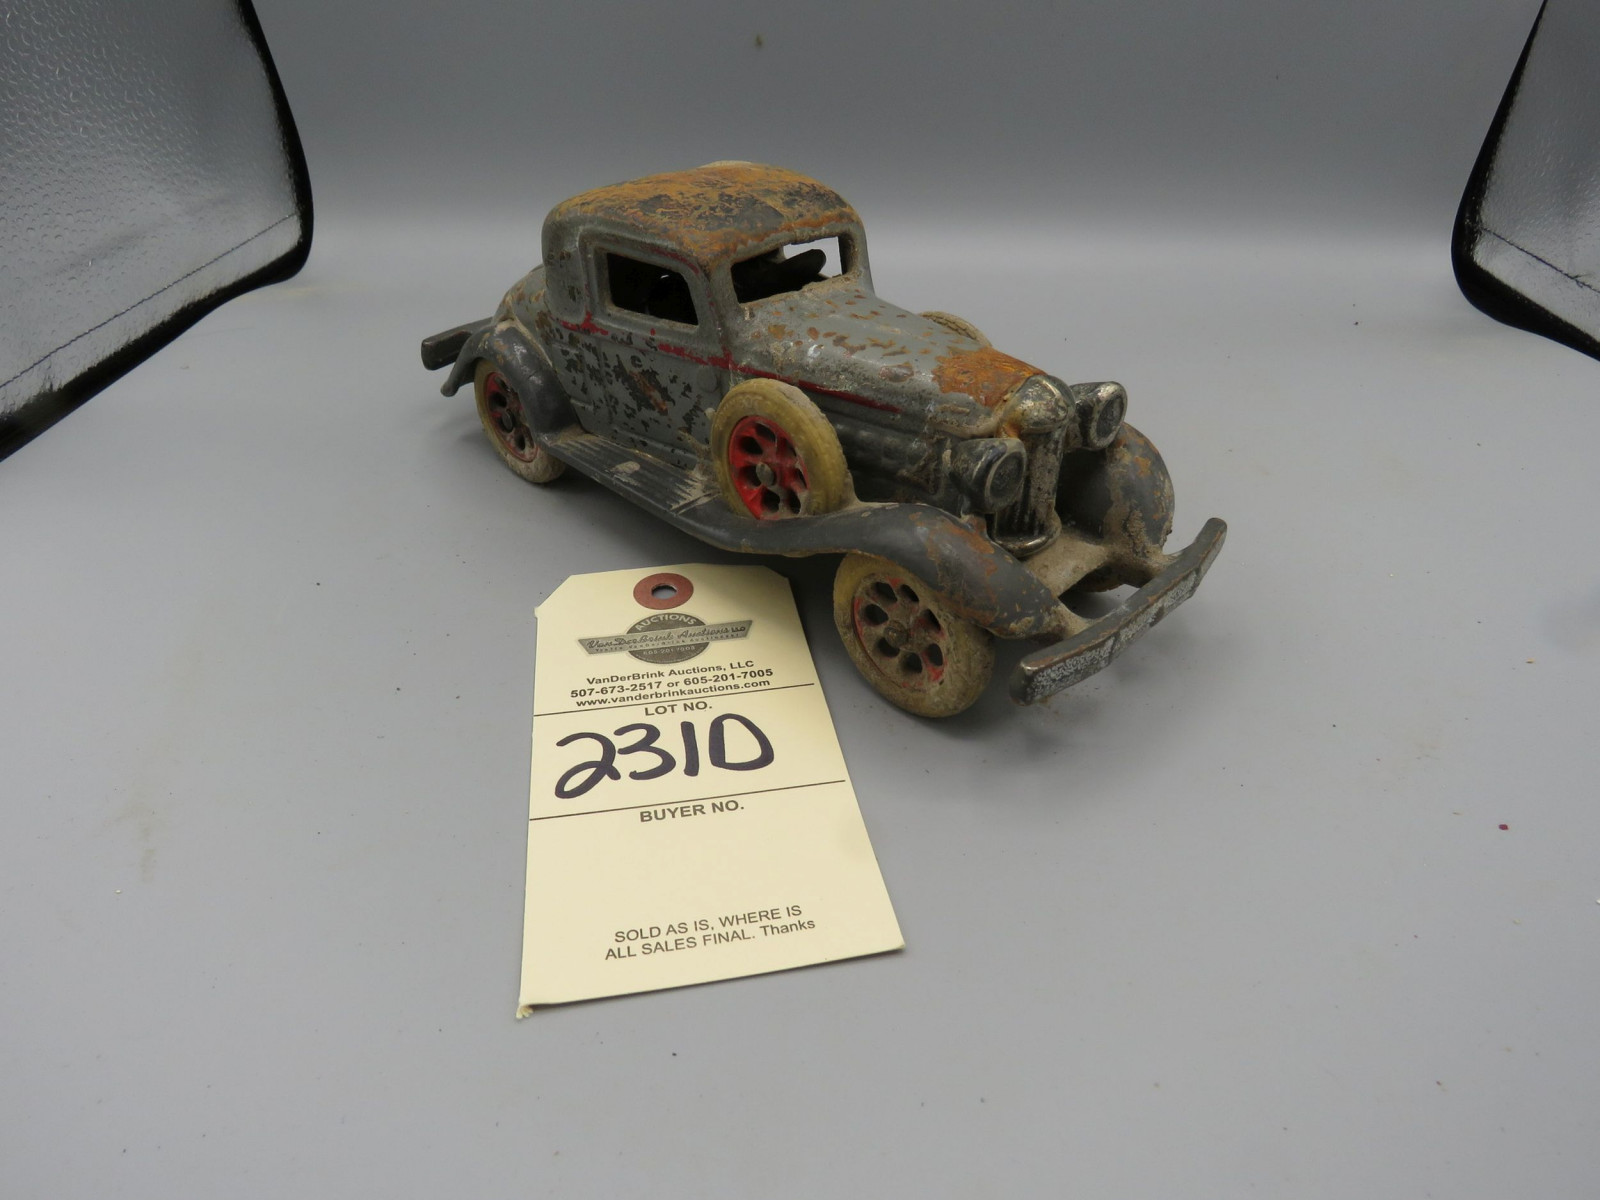 Vintage Cast Iron Car - Image 1